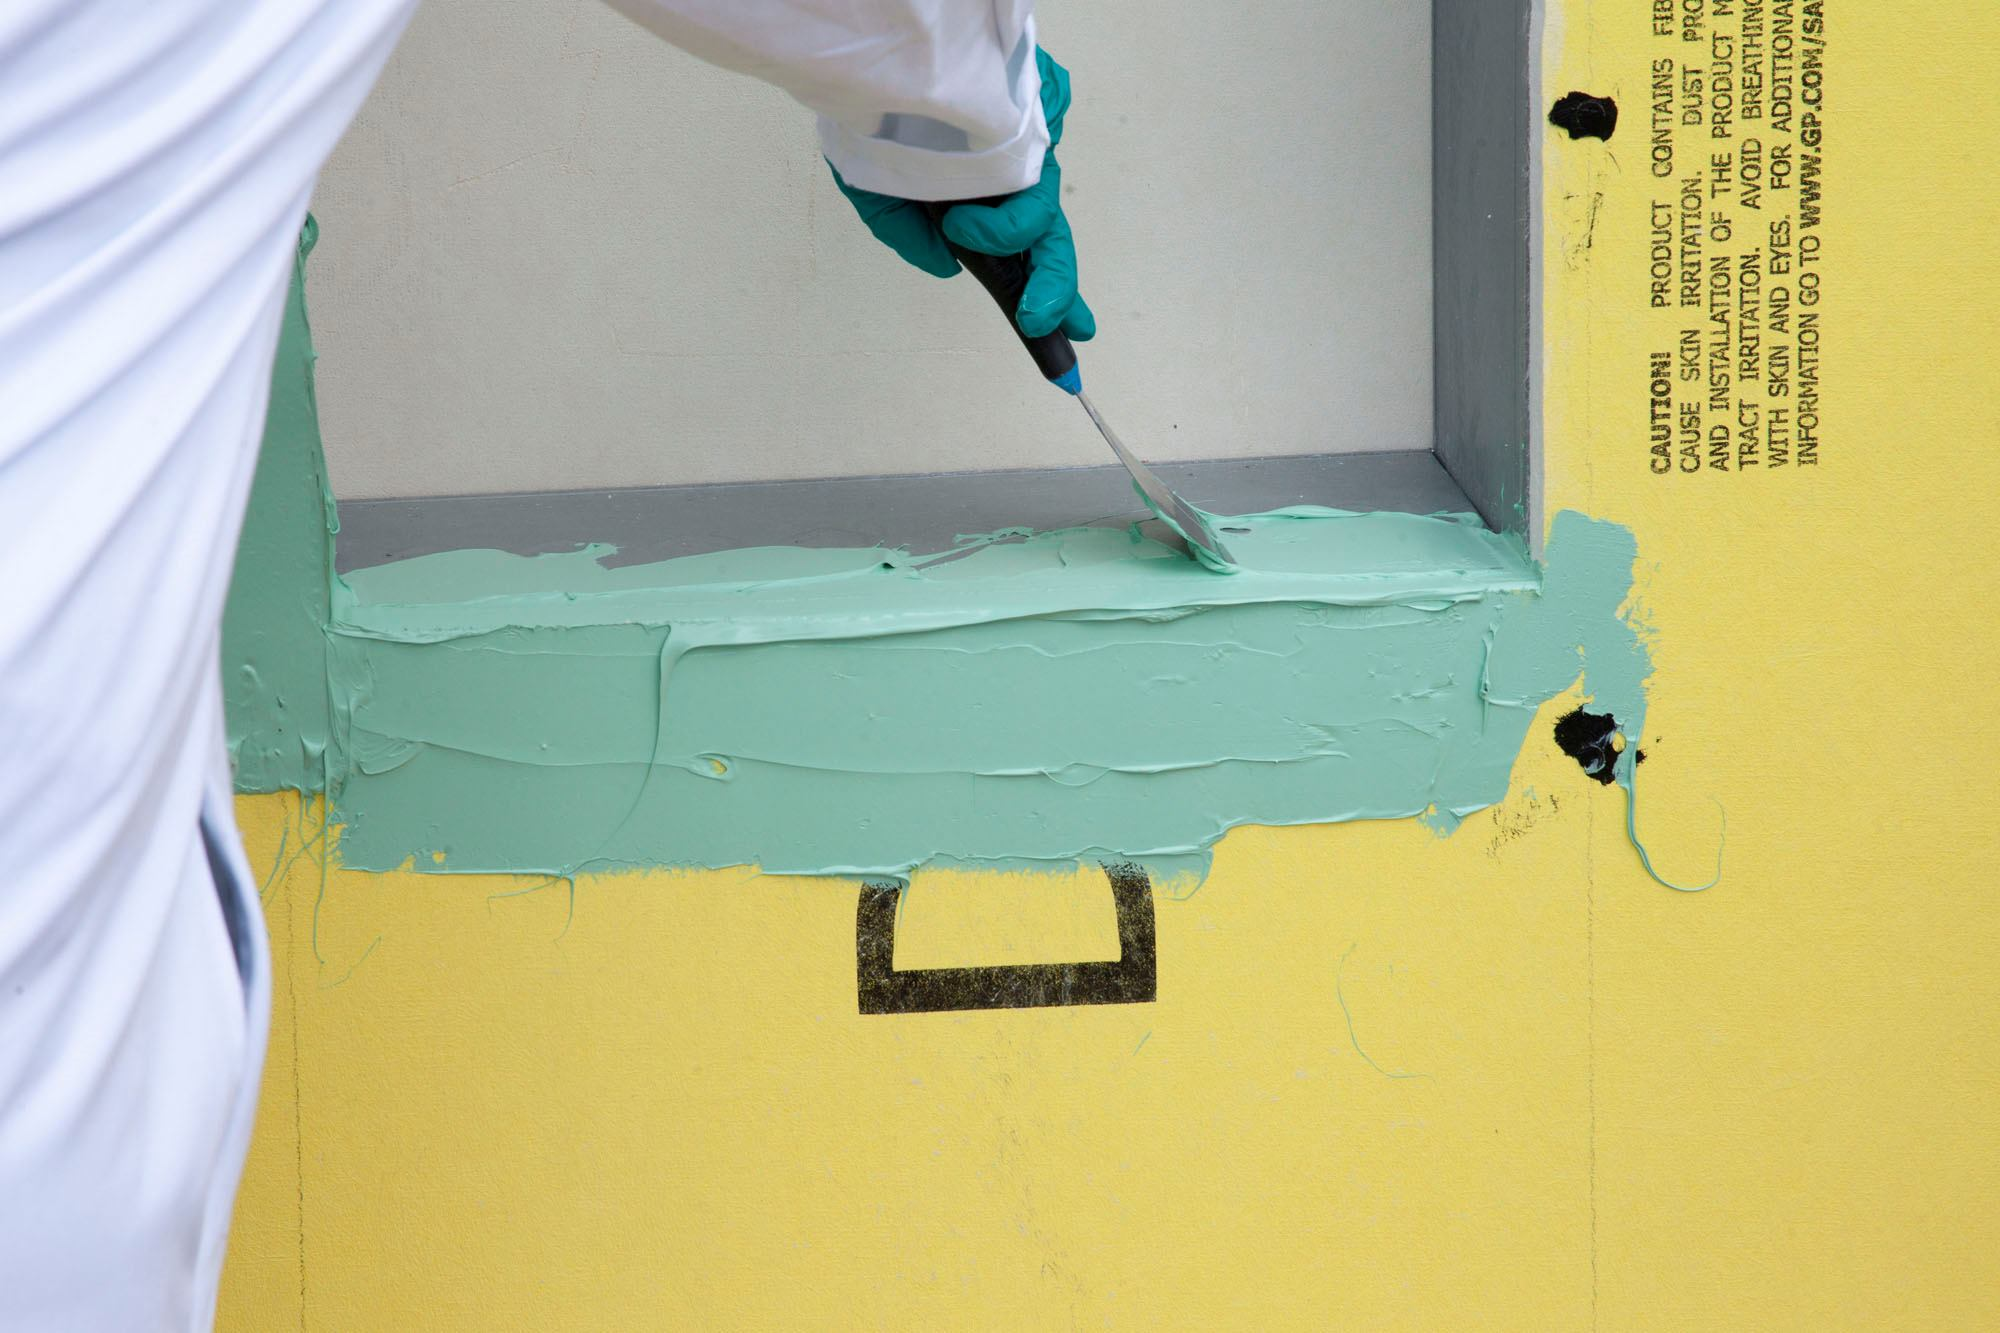 Dow Corning Adds Liquid Silicone Flashing For Rough